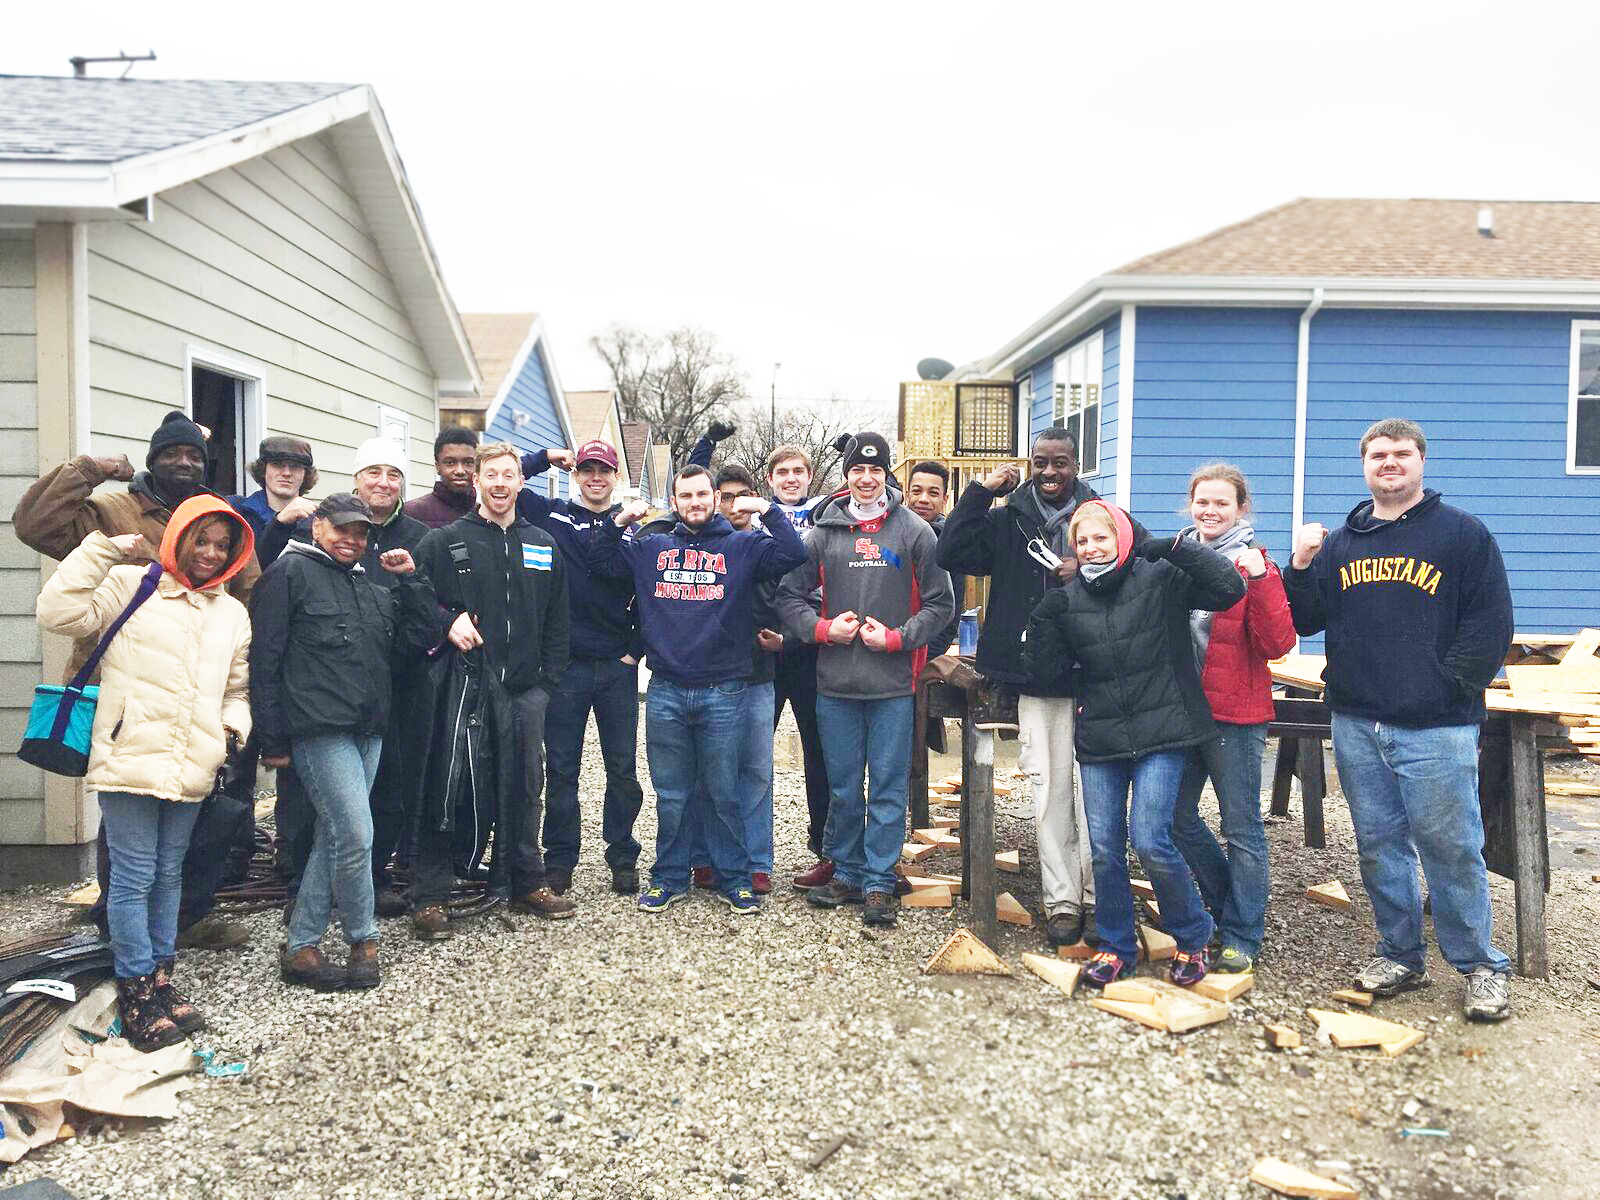 Nine Ritamen volunteered with Habitat for Humanity Chicago on Holy Thursday